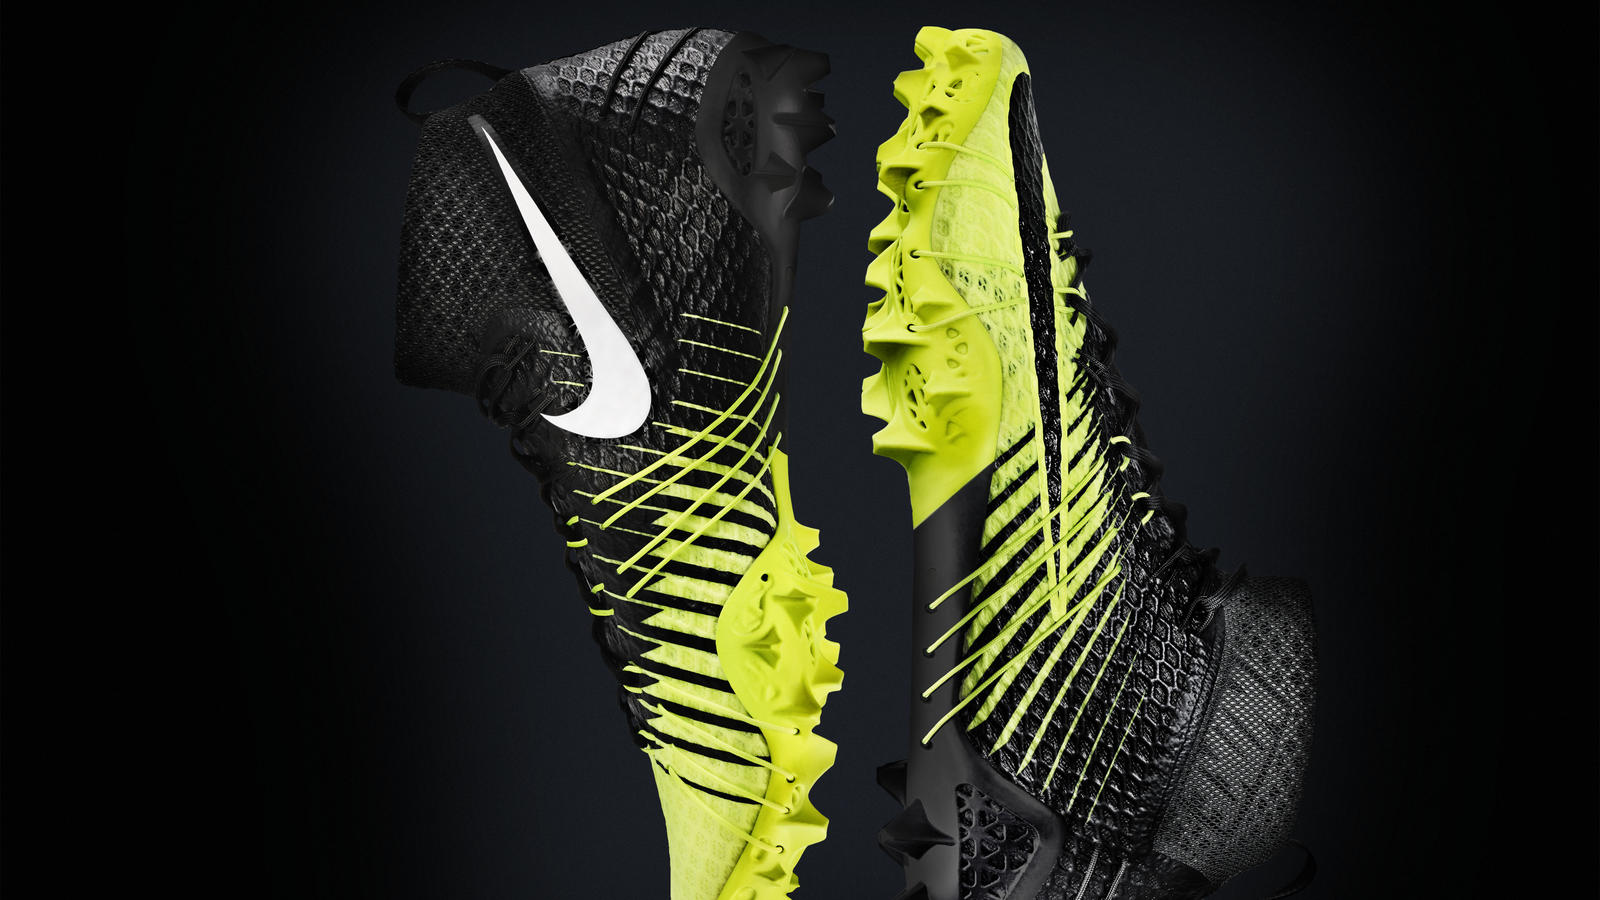 giay the thao cong nghe oto nike vapor ultimate cleat with 3d printed cleat plate elle man 1